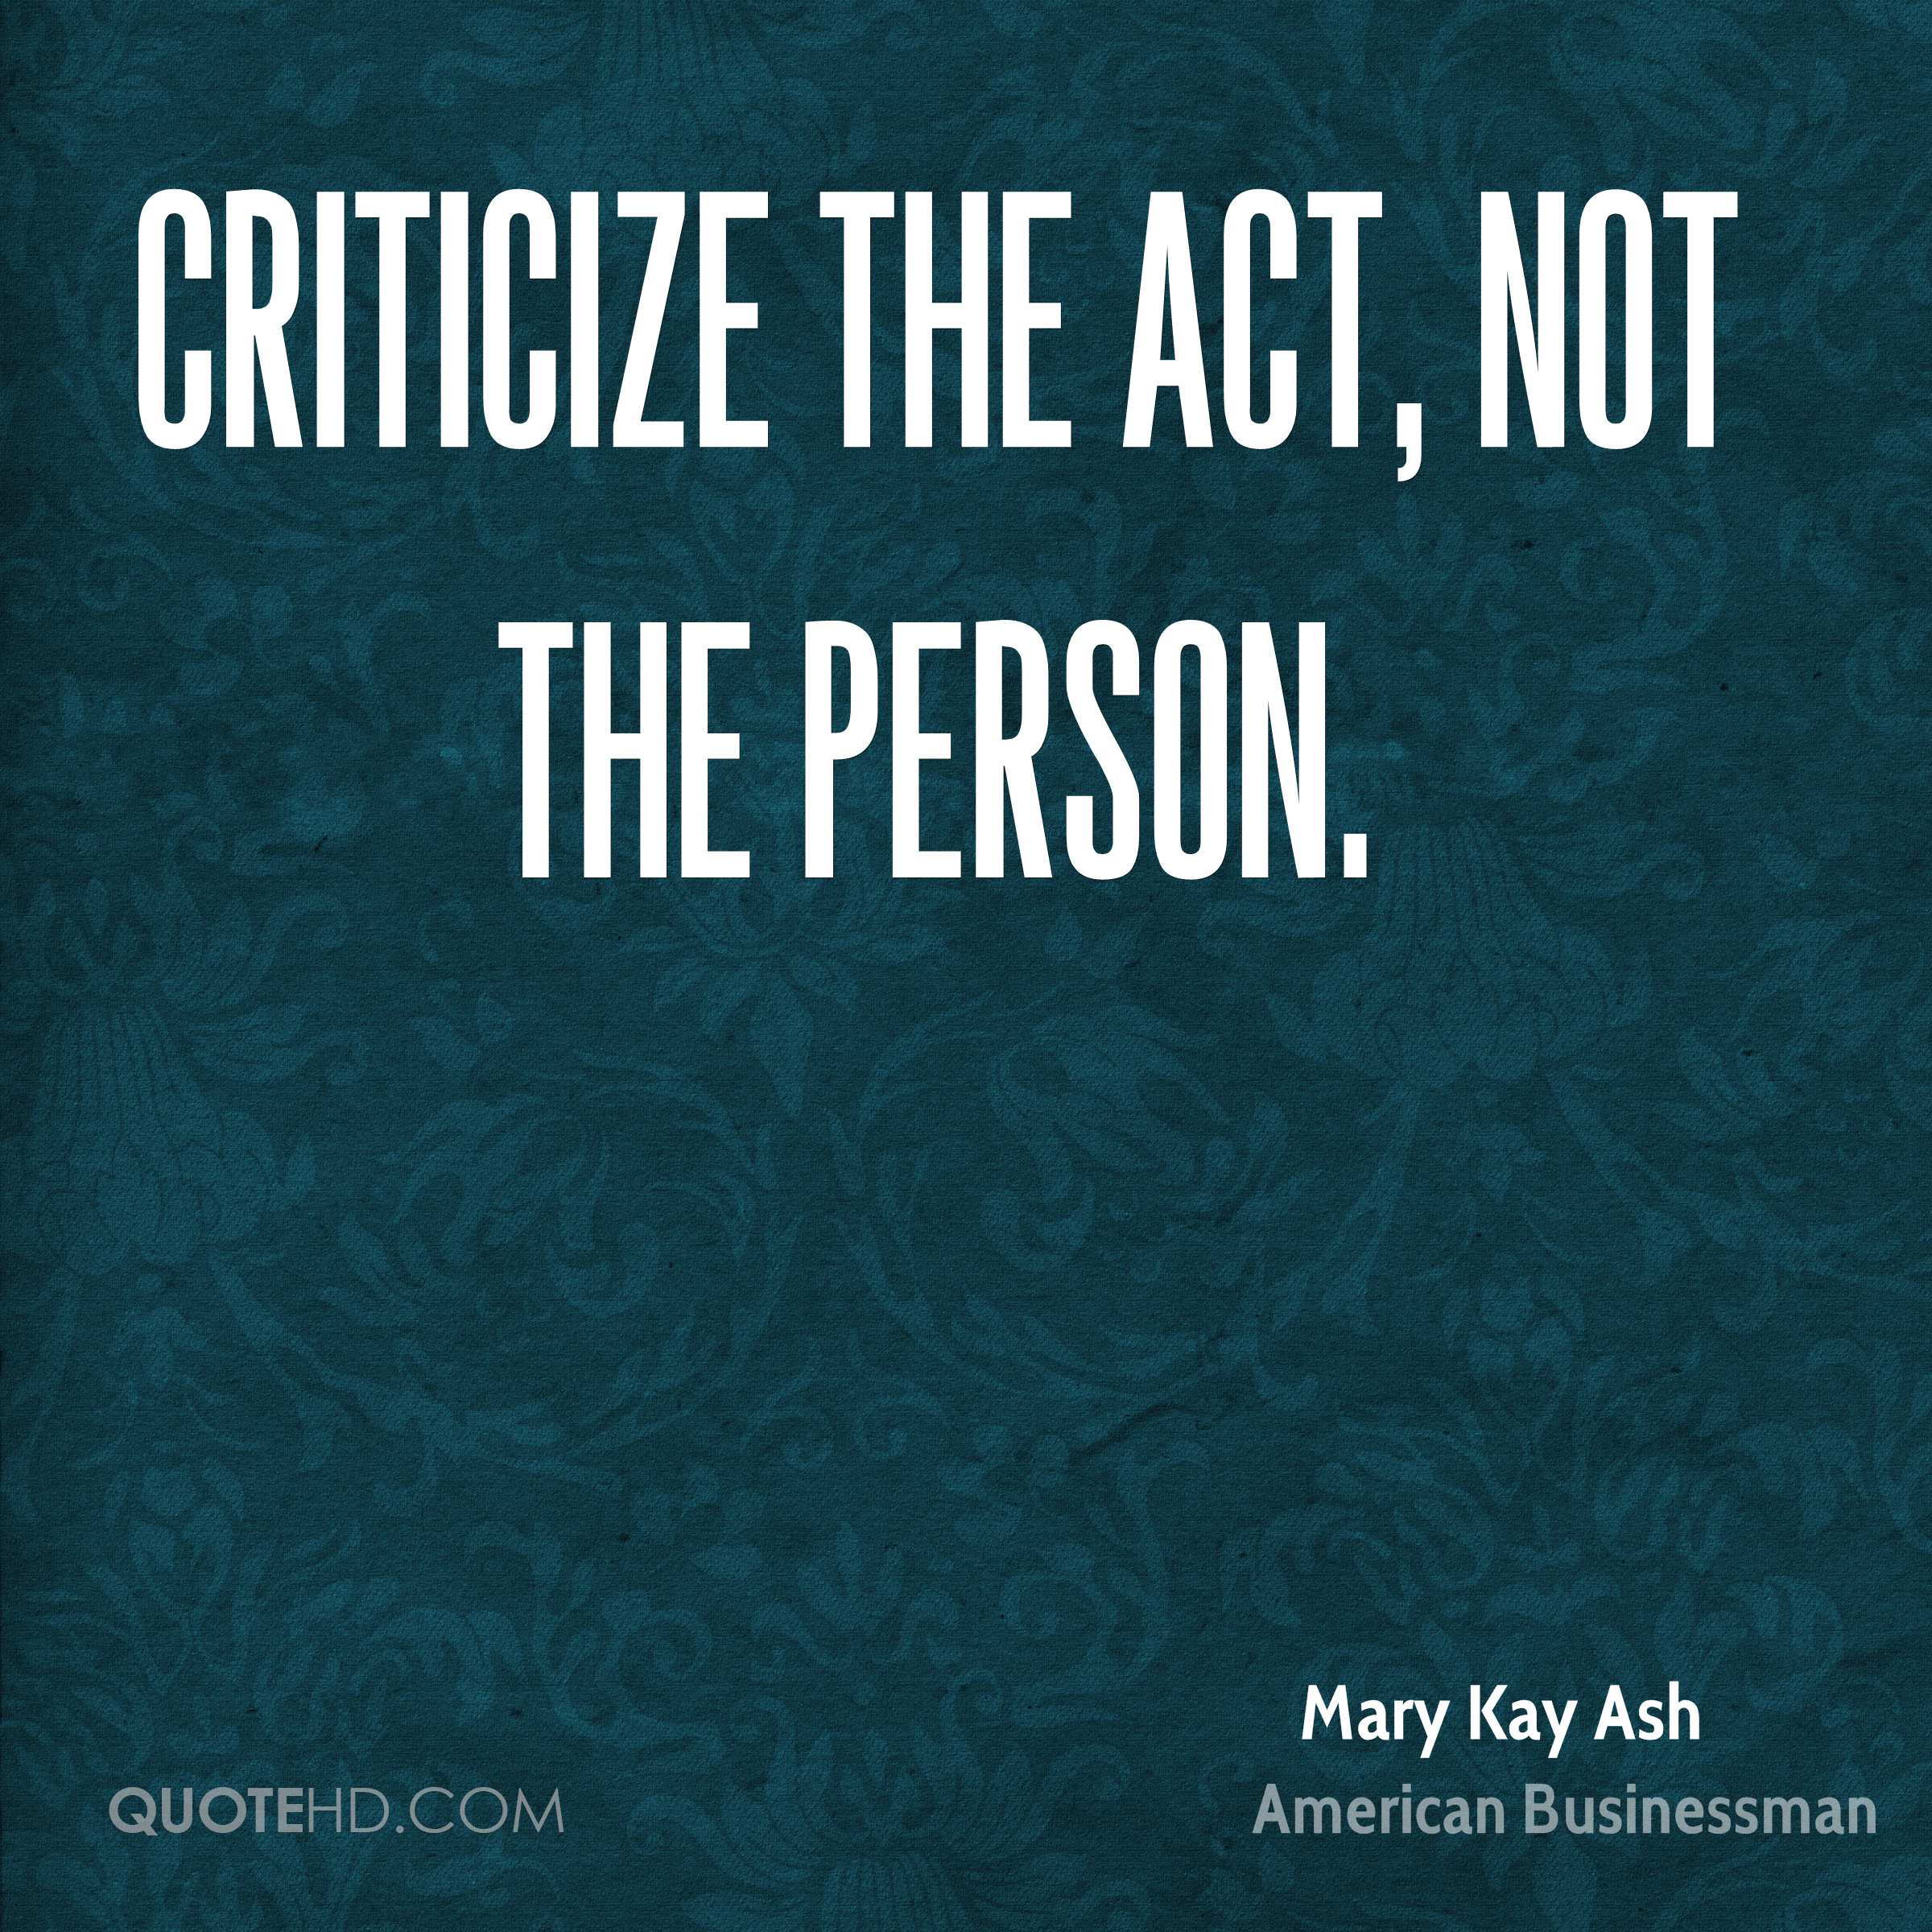 Criticize the act, not the person.